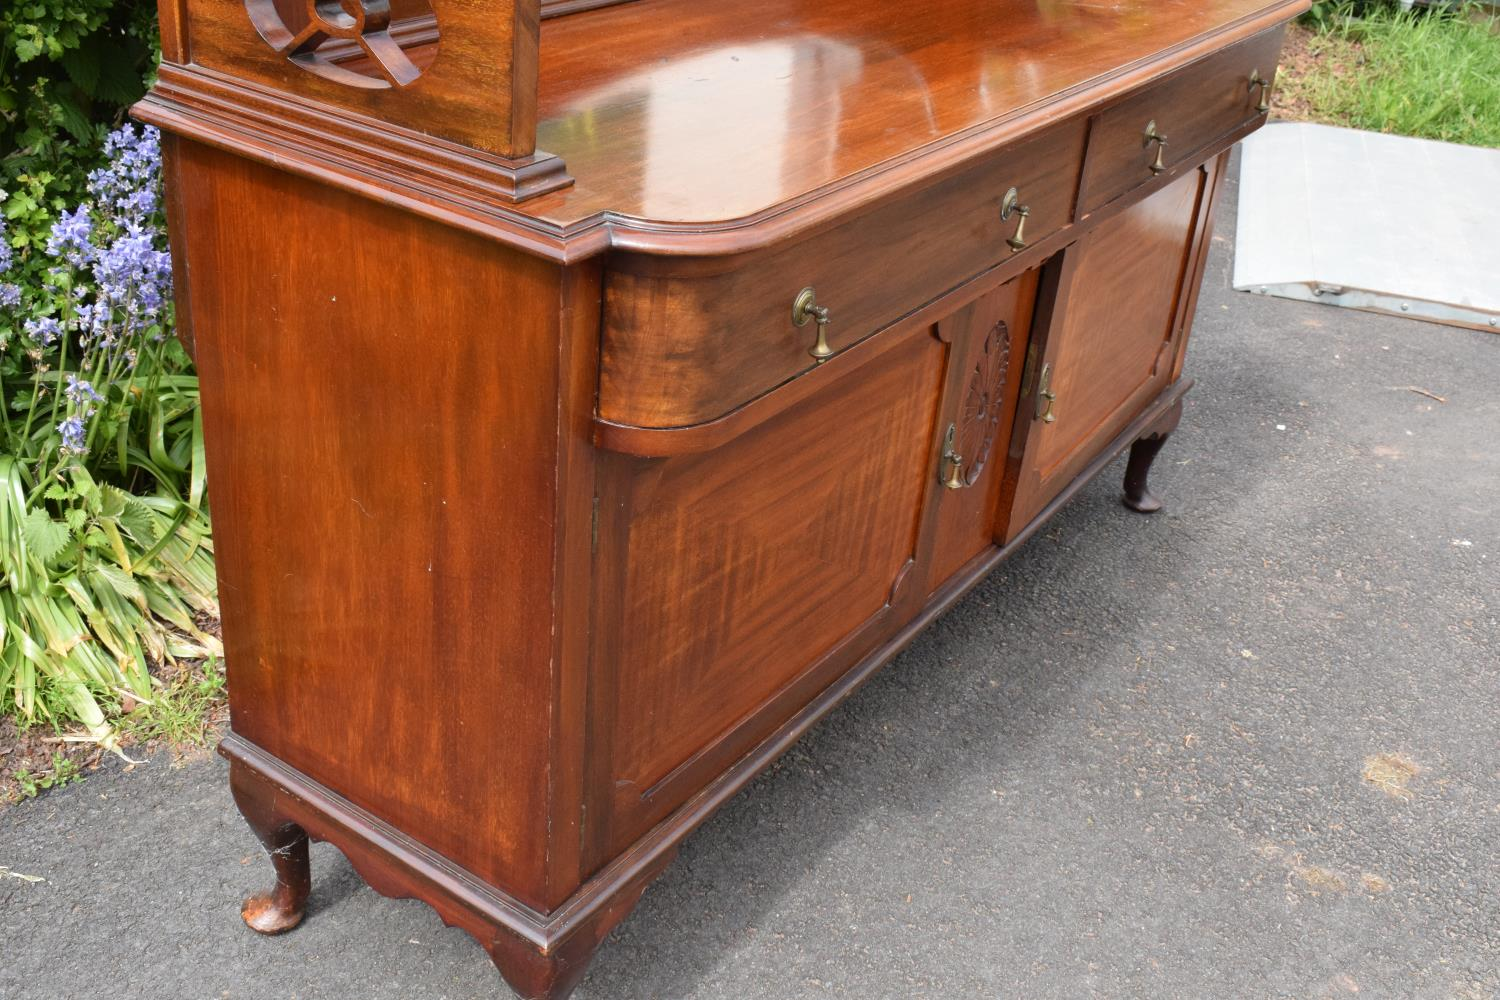 Edwardian mirror backed sideboard/ drinks cabinet. 168 x 56 x 183cm. The top section lifts off and - Image 6 of 11